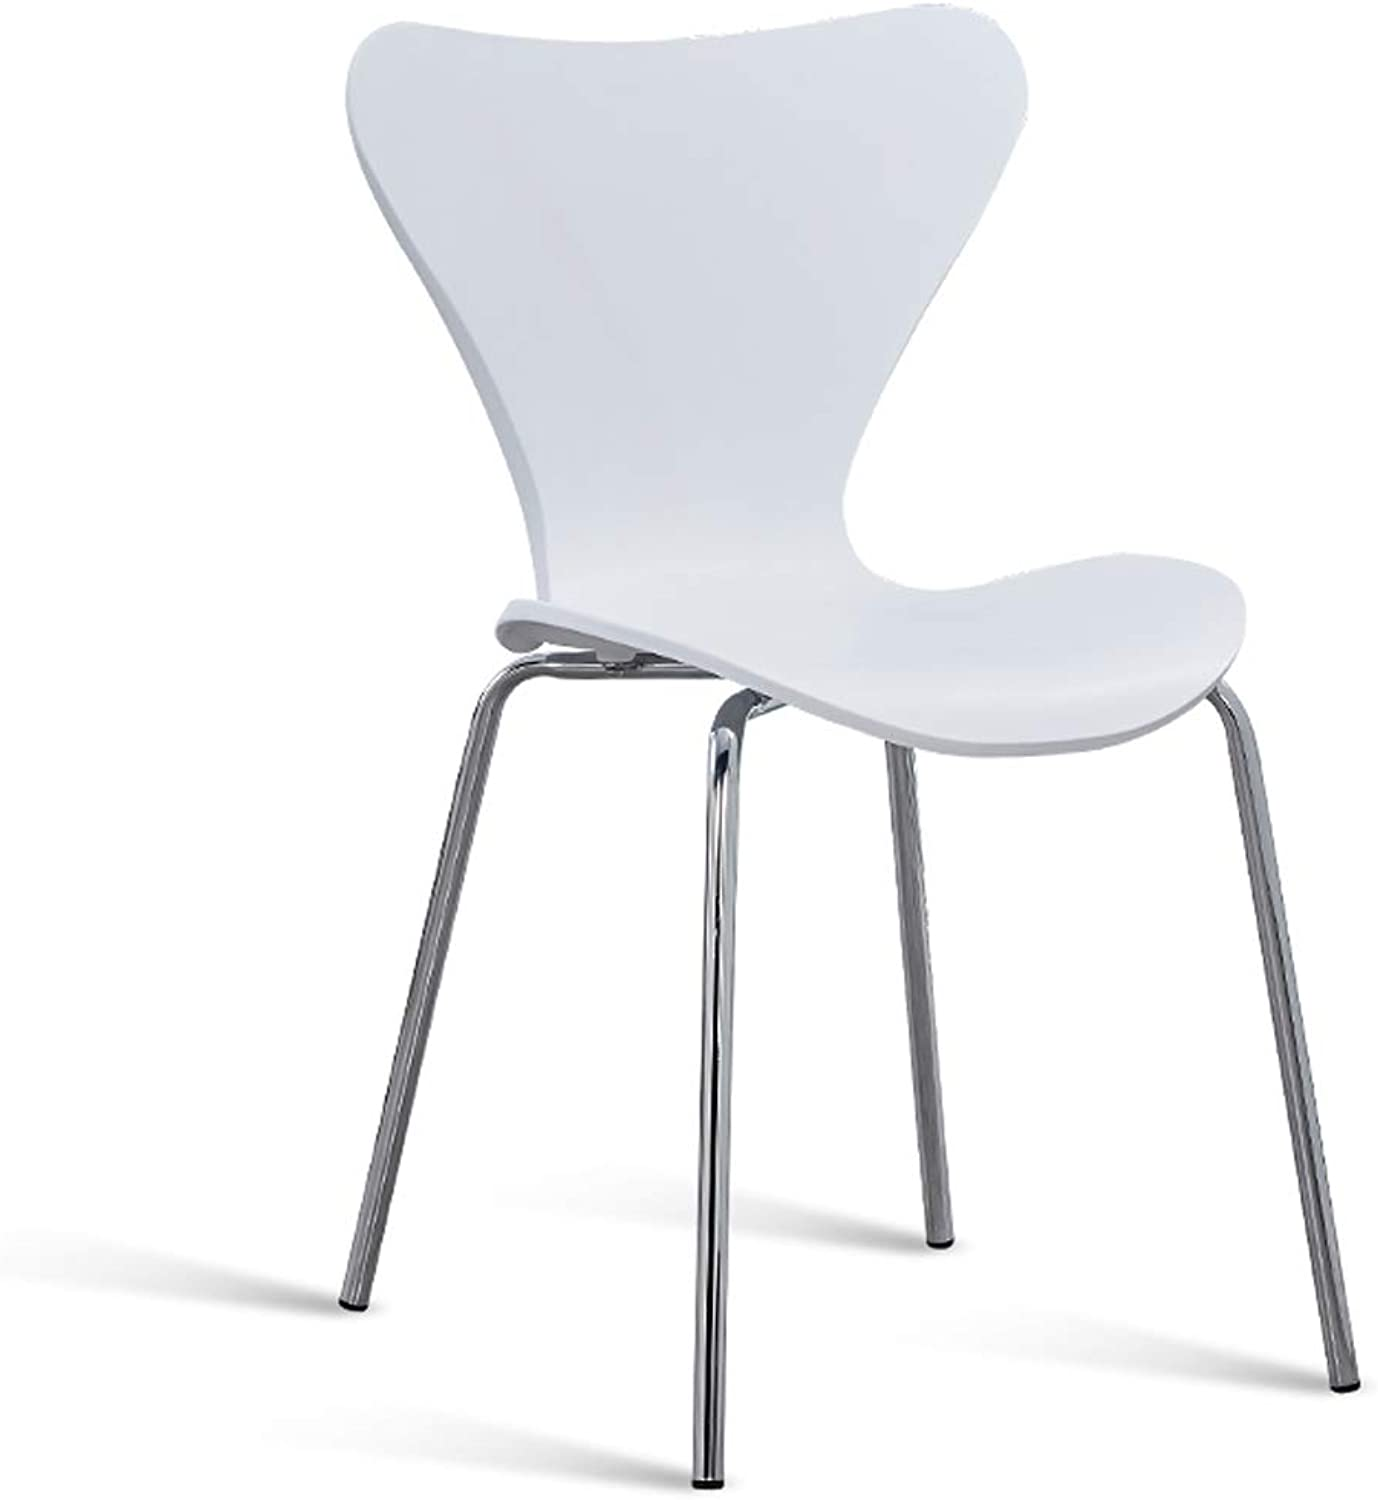 LRW Modern Minimalist Iron Chair Dining Hall, Fashion and Creative Butterfly Chair, Family Dining Chair, Stainless Steel Backrest Chair, White